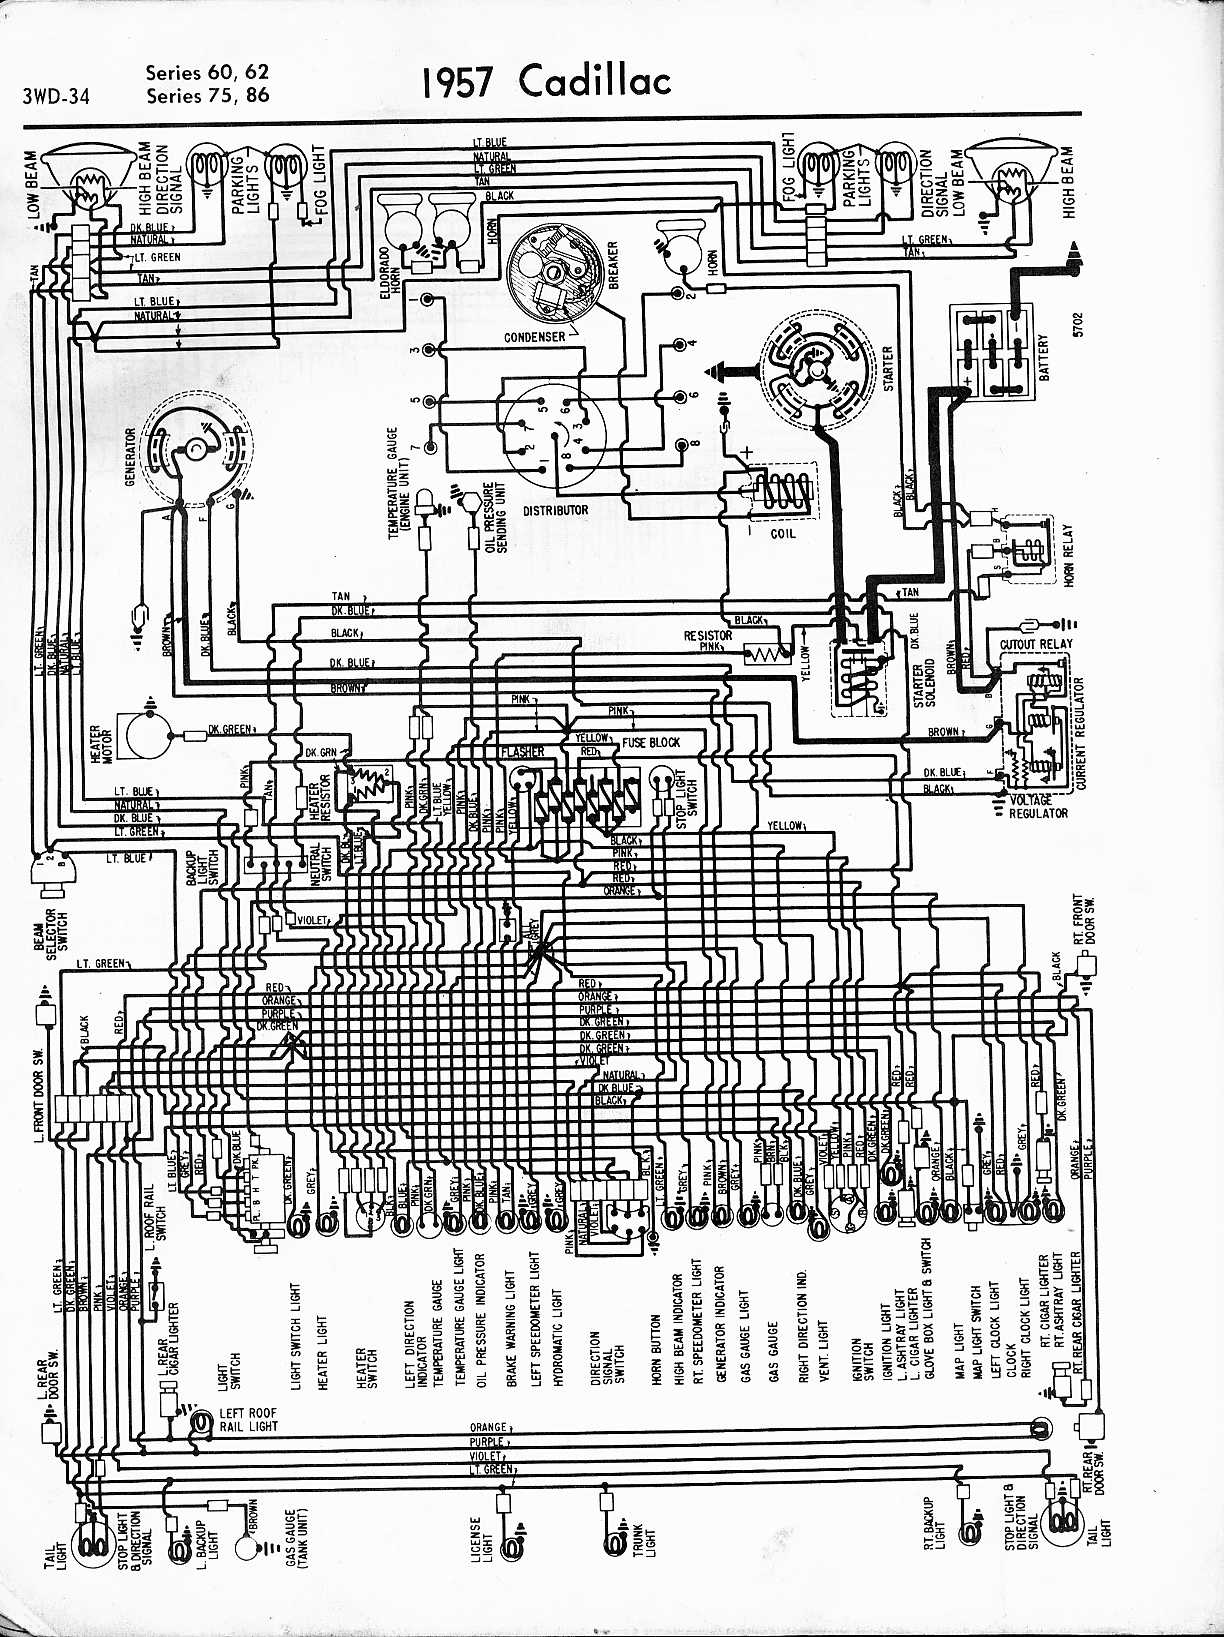 DIAGRAM] 1997 Cadillac Wiring Diagram FULL Version HD Quality Wiring Diagram  - WEBUMLDIAGRAMS.BELEN-RODRIGUEZ.ITbelen-rodriguez.it